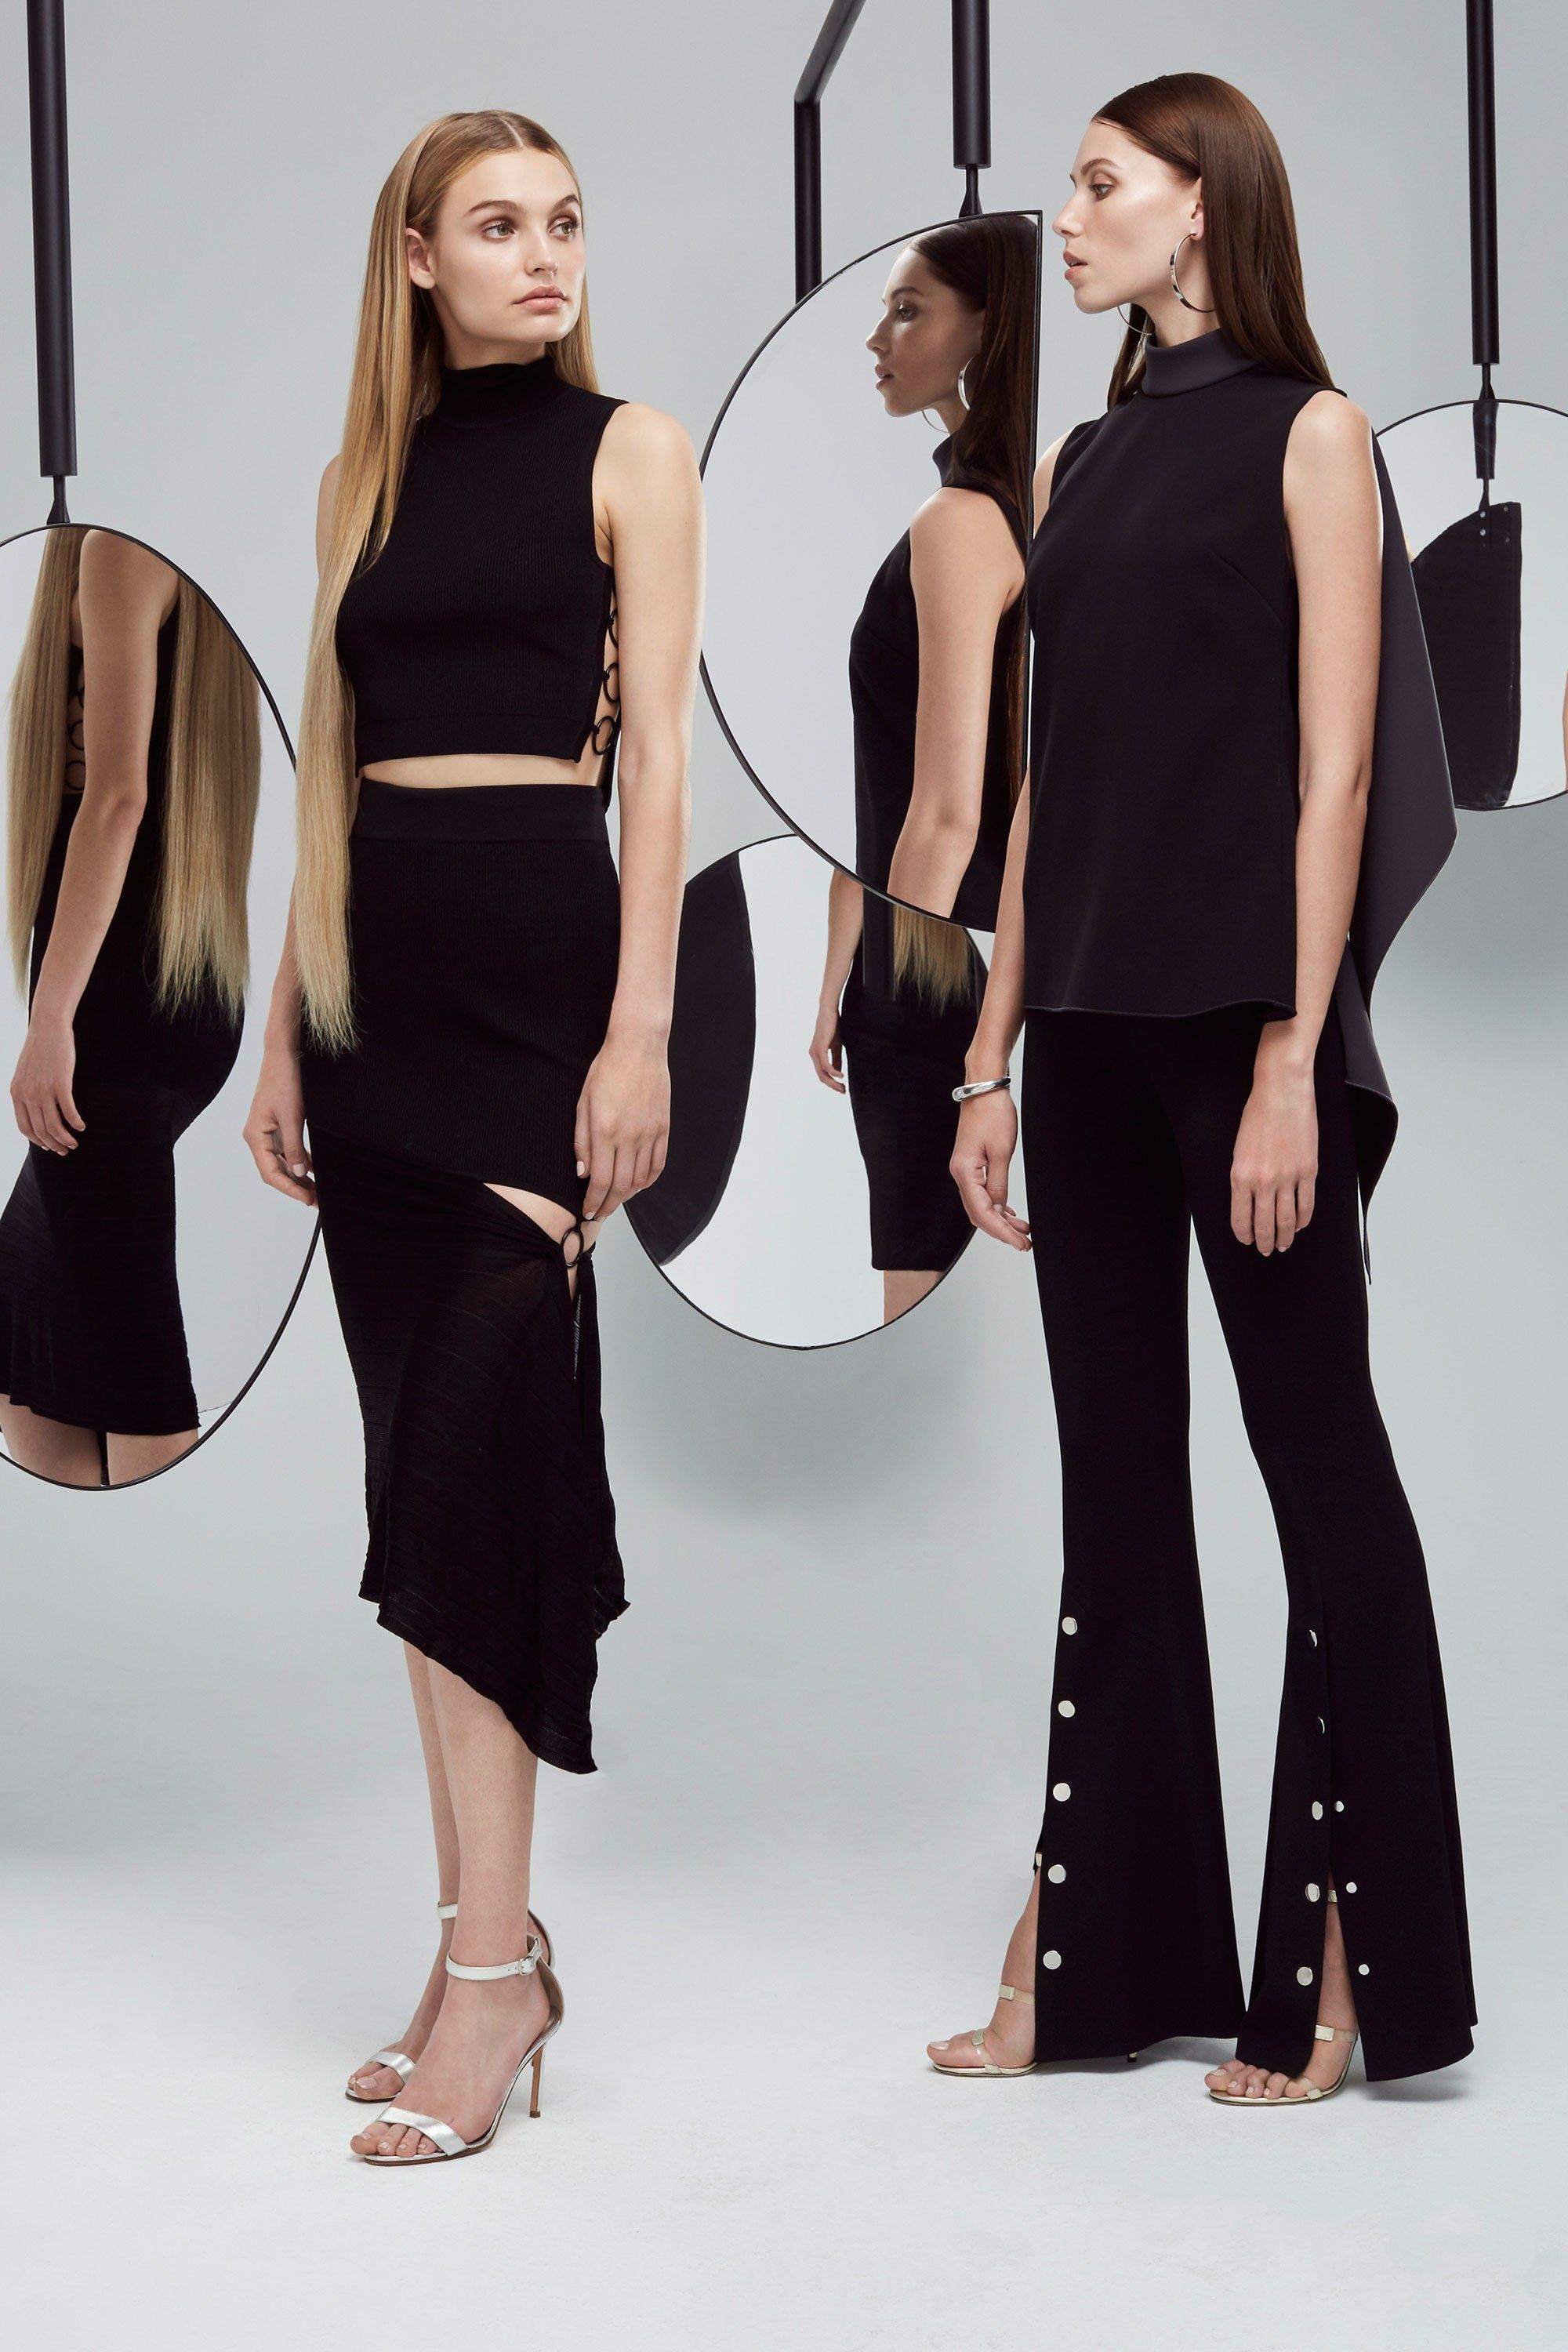 cc9b9c30244 See the complete Cushnie et Ochs Resort 2018 collection.